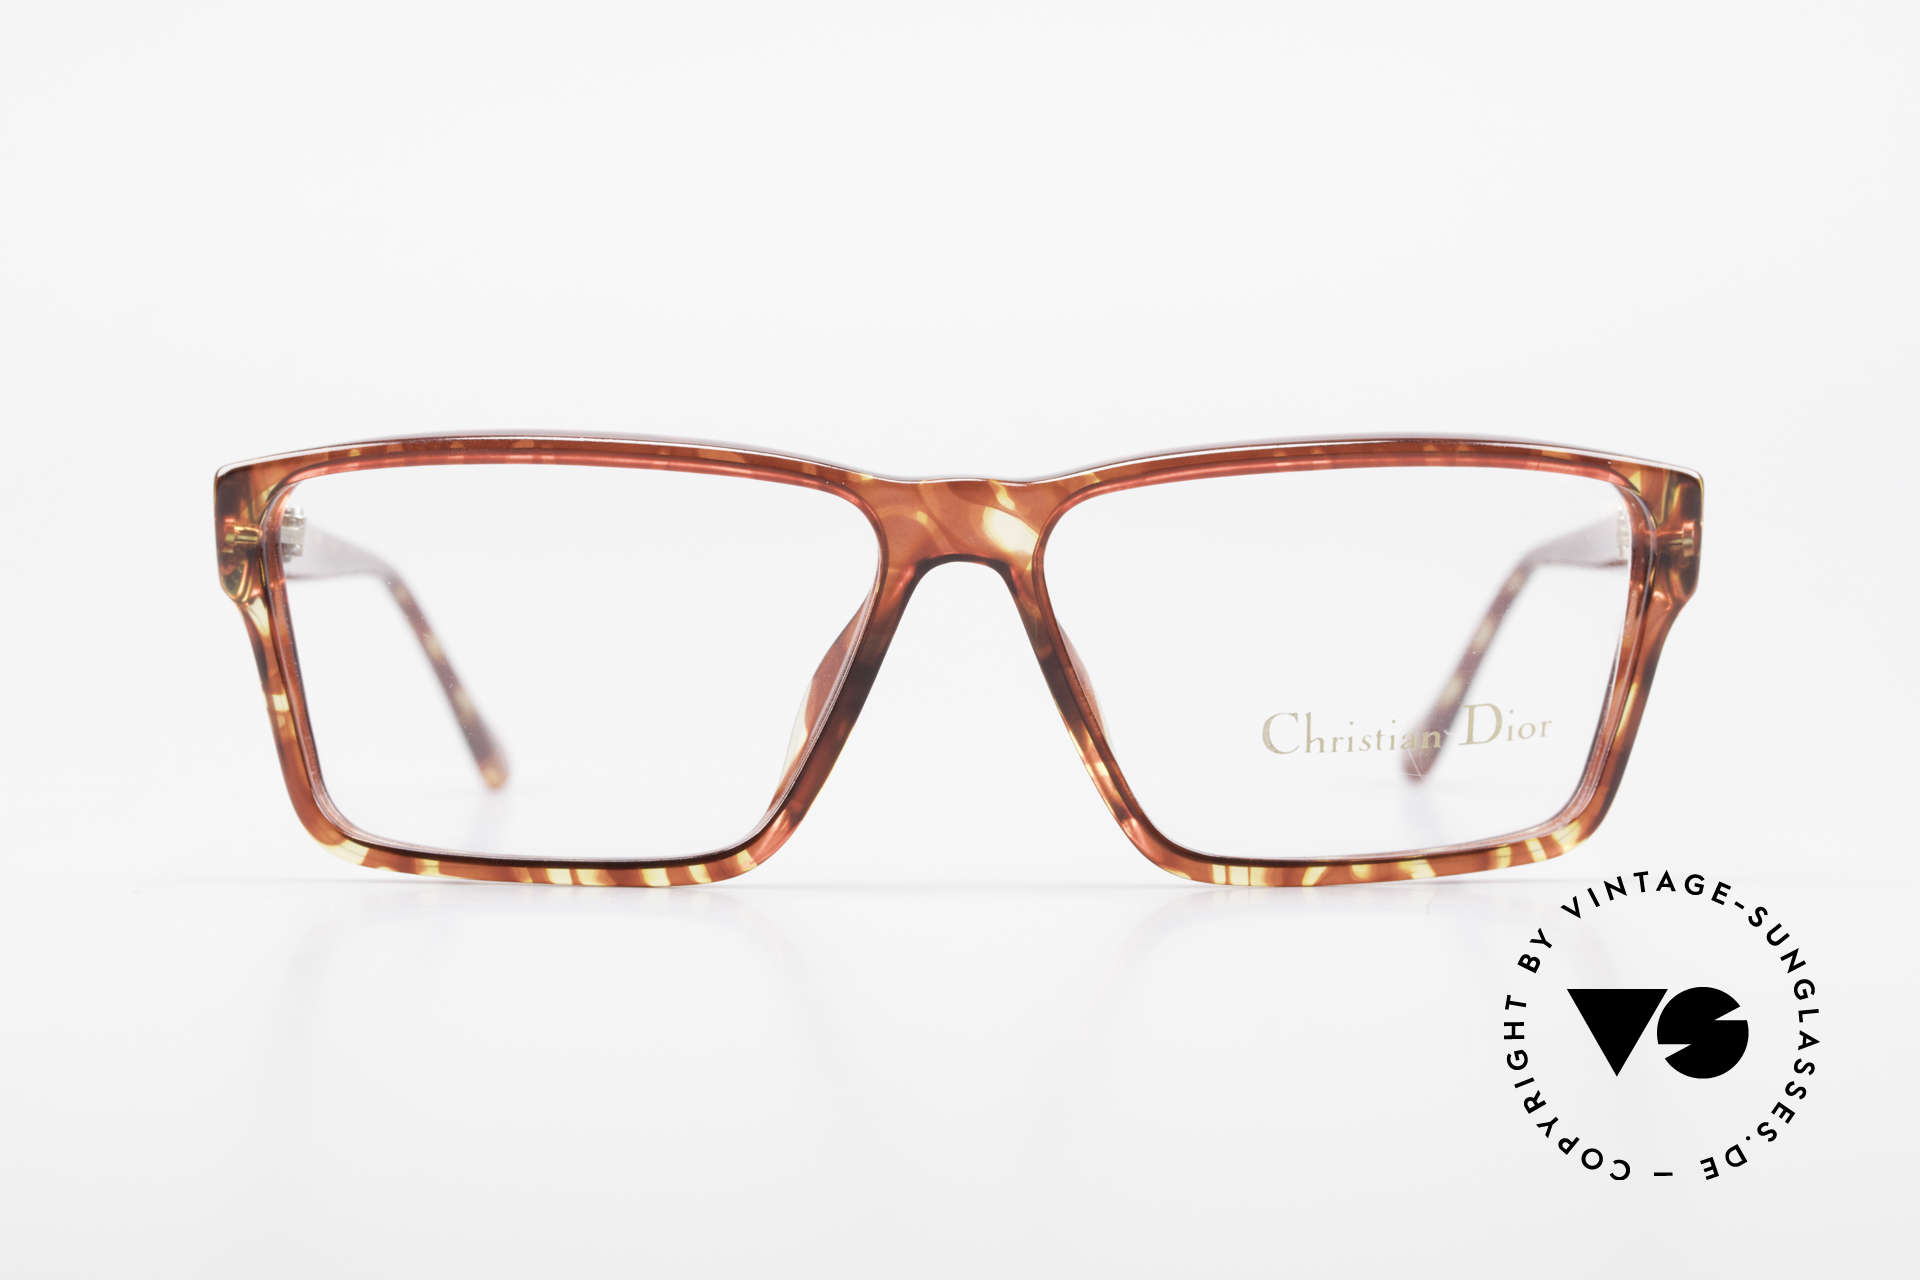 Christian Dior 2628 Old 80's Optyl Frame Unisex, unique and very elegant frame pattern; size 58-13, Made for Men and Women